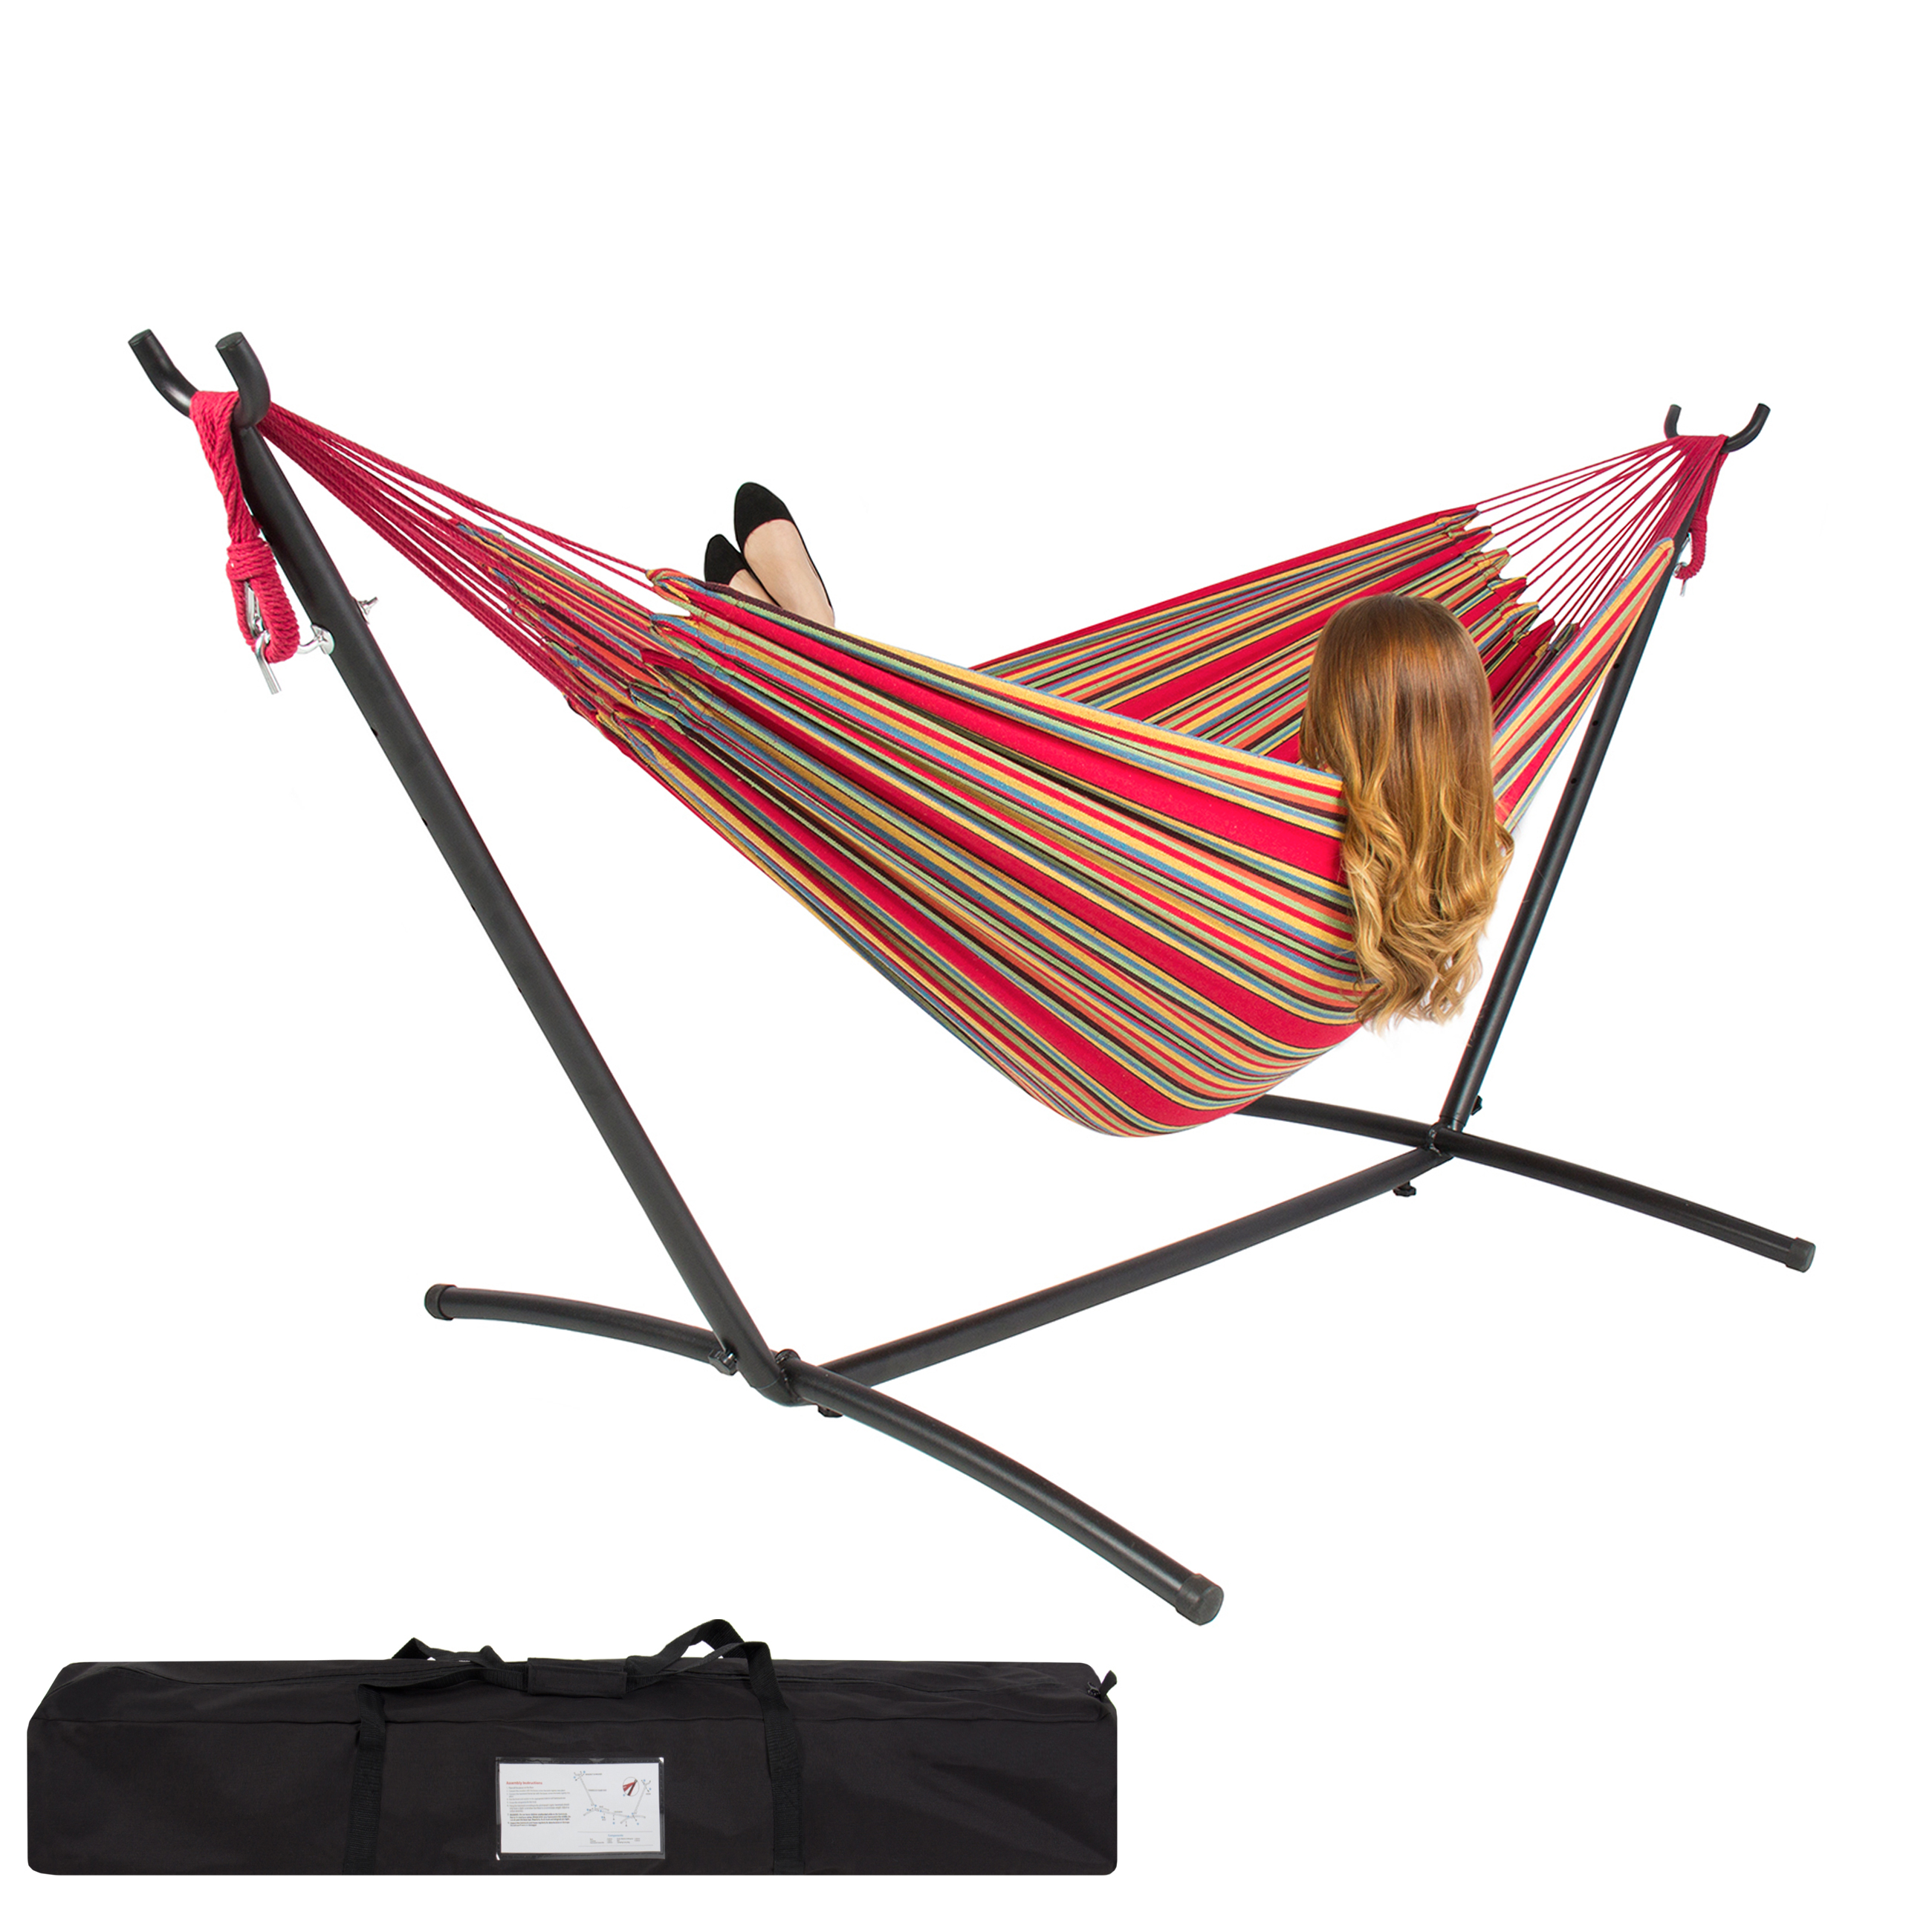 Double Hammock With Space Saving Steel Stand Includes Portable Carrying Case Red by